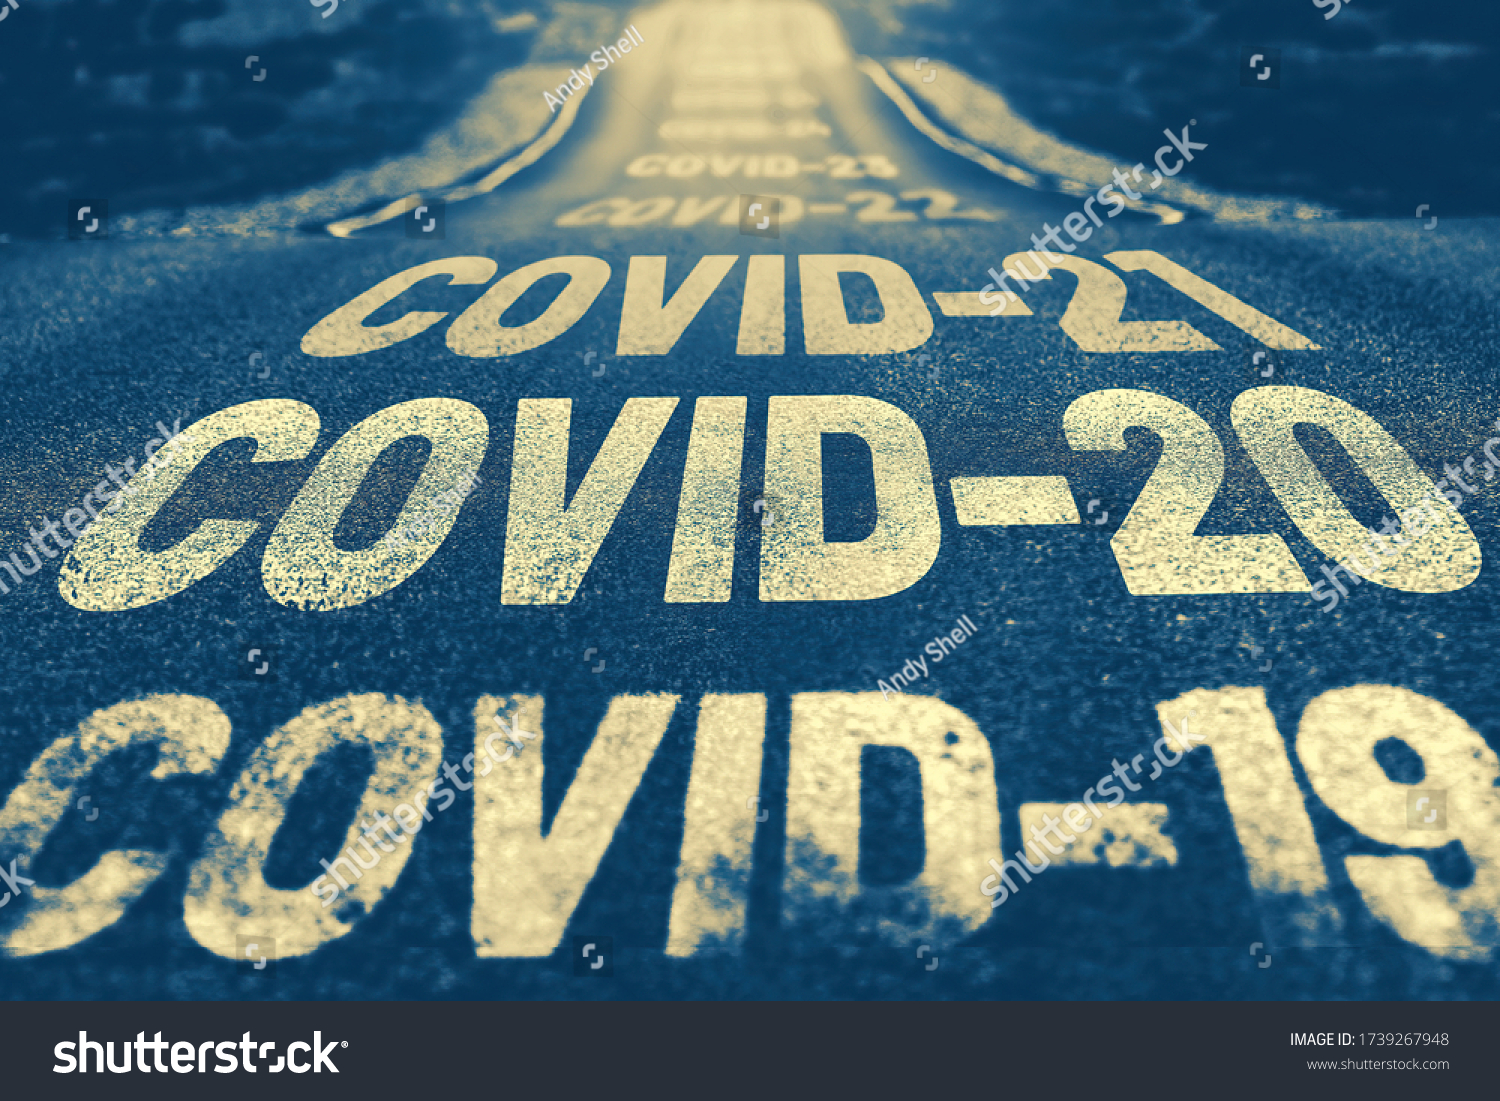 Deserted highway with the text COVID-19, COVID-20, COVID-21 and so on. The concept of new world pandemics. Blue background #1739267948